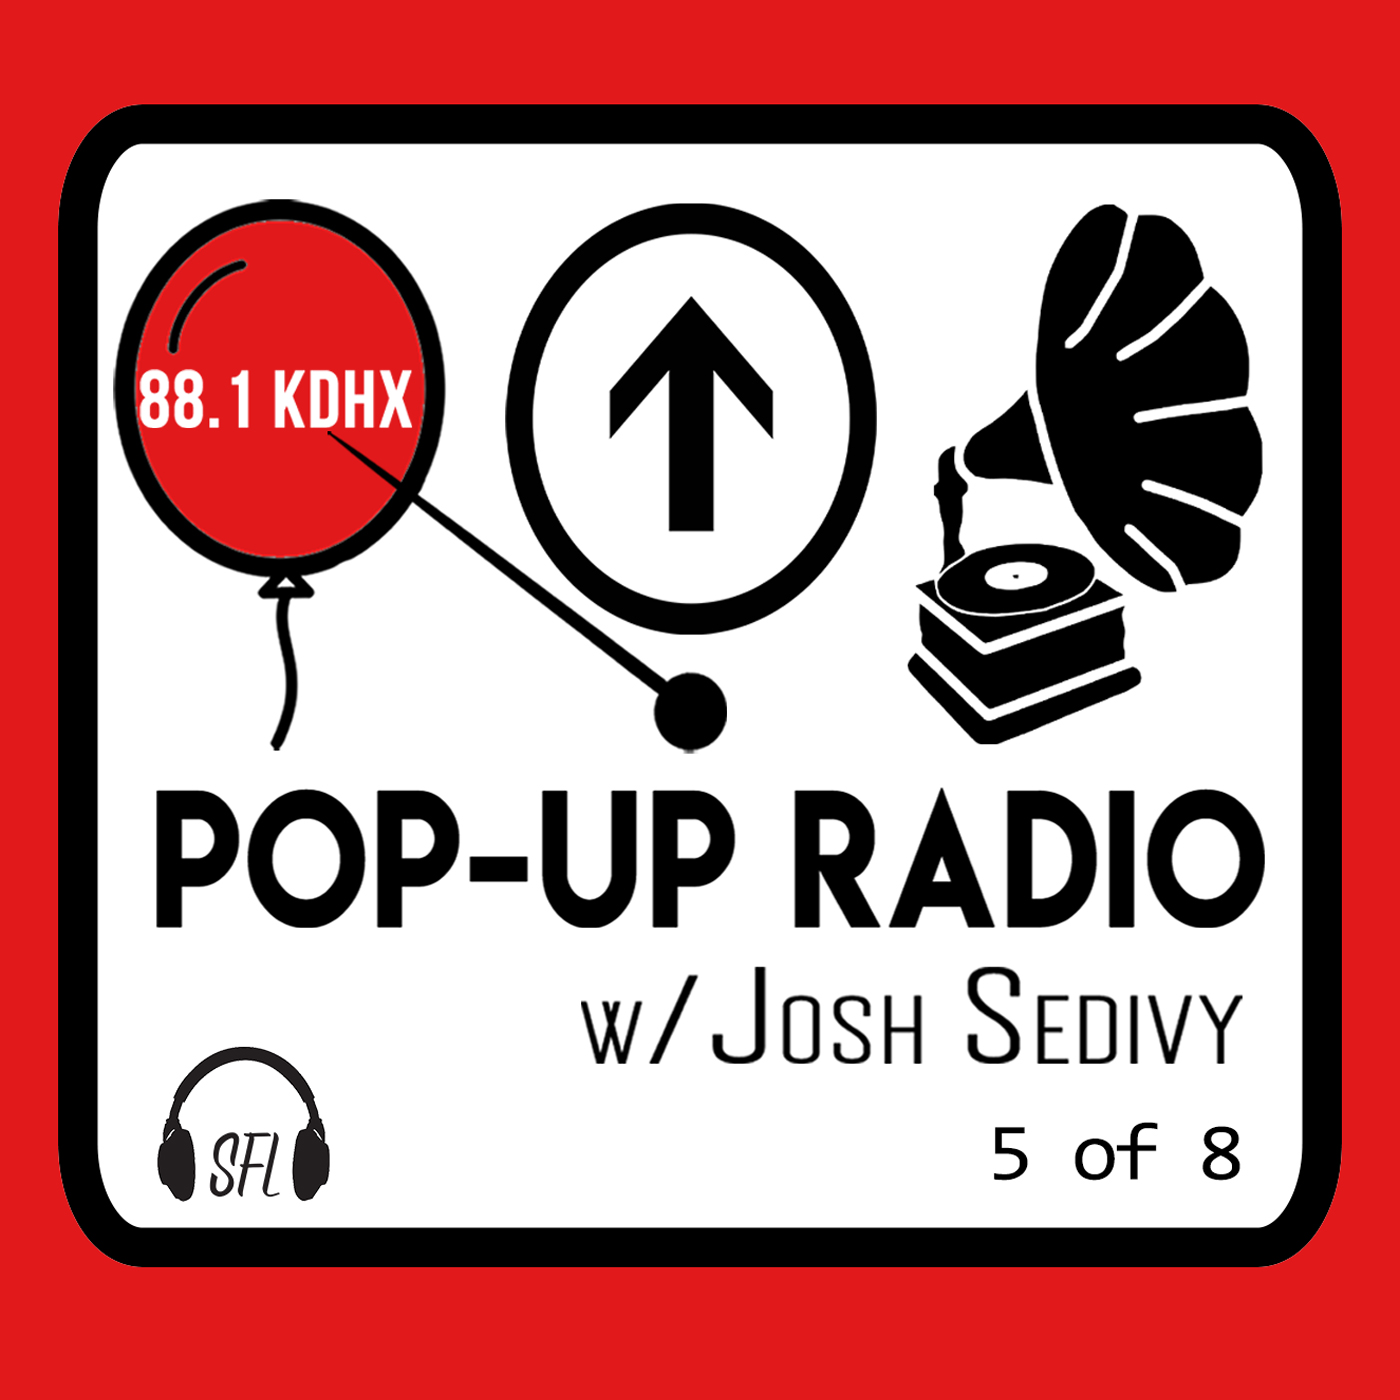 Pop-Up Radio on KDHX - Episode 5